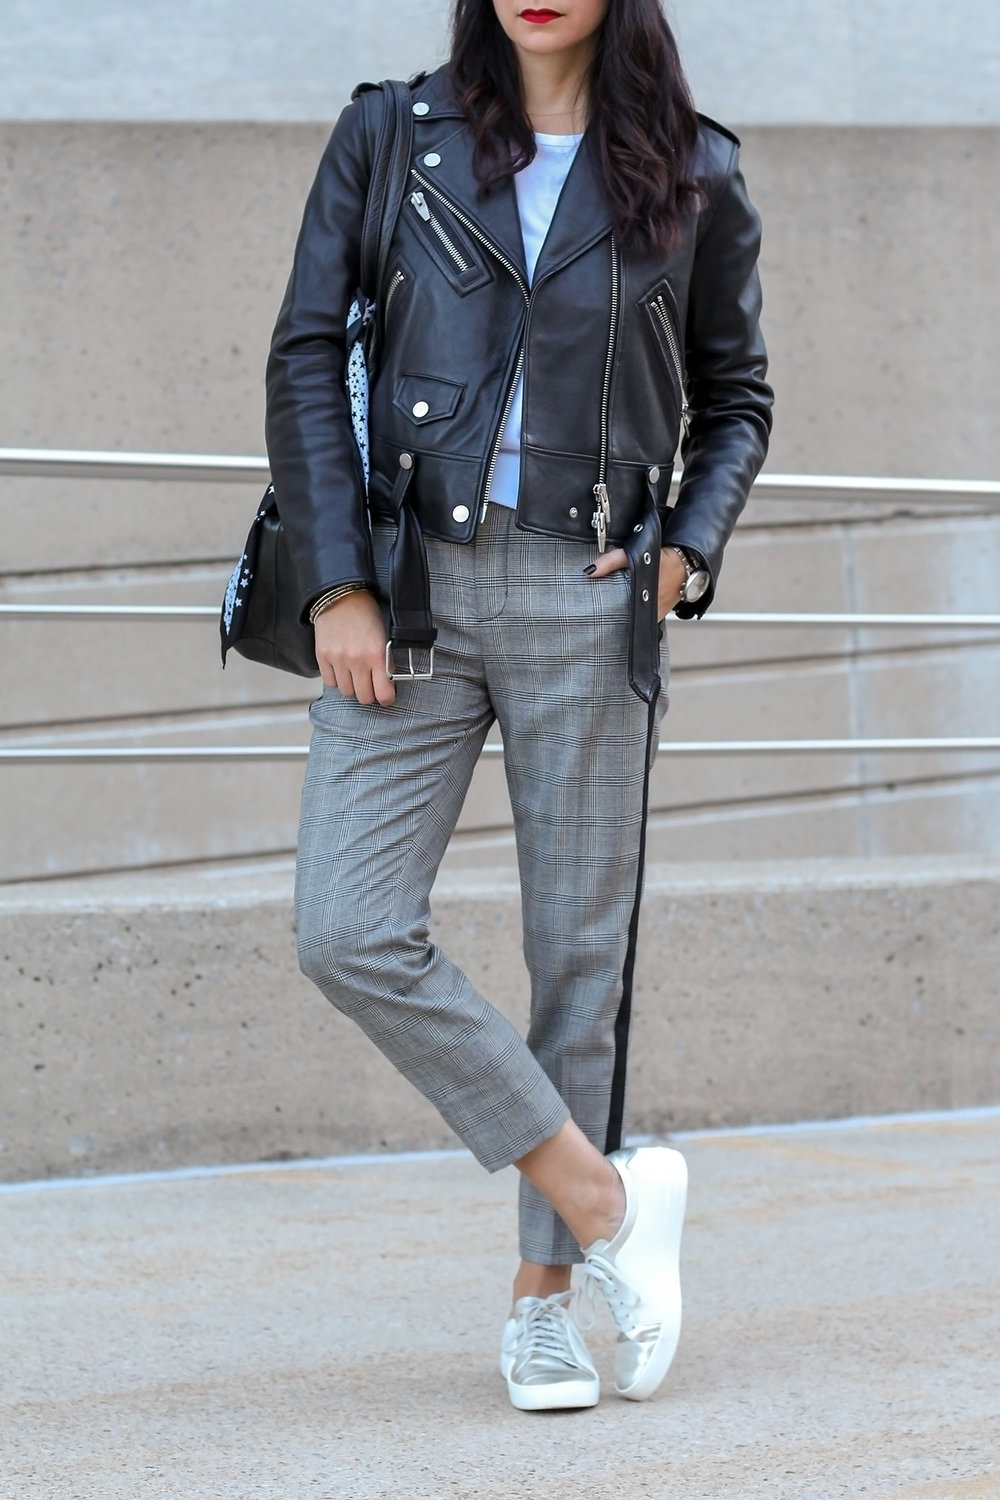 NYC Style, Plaid Pants, Sneakers, Leather Jacket